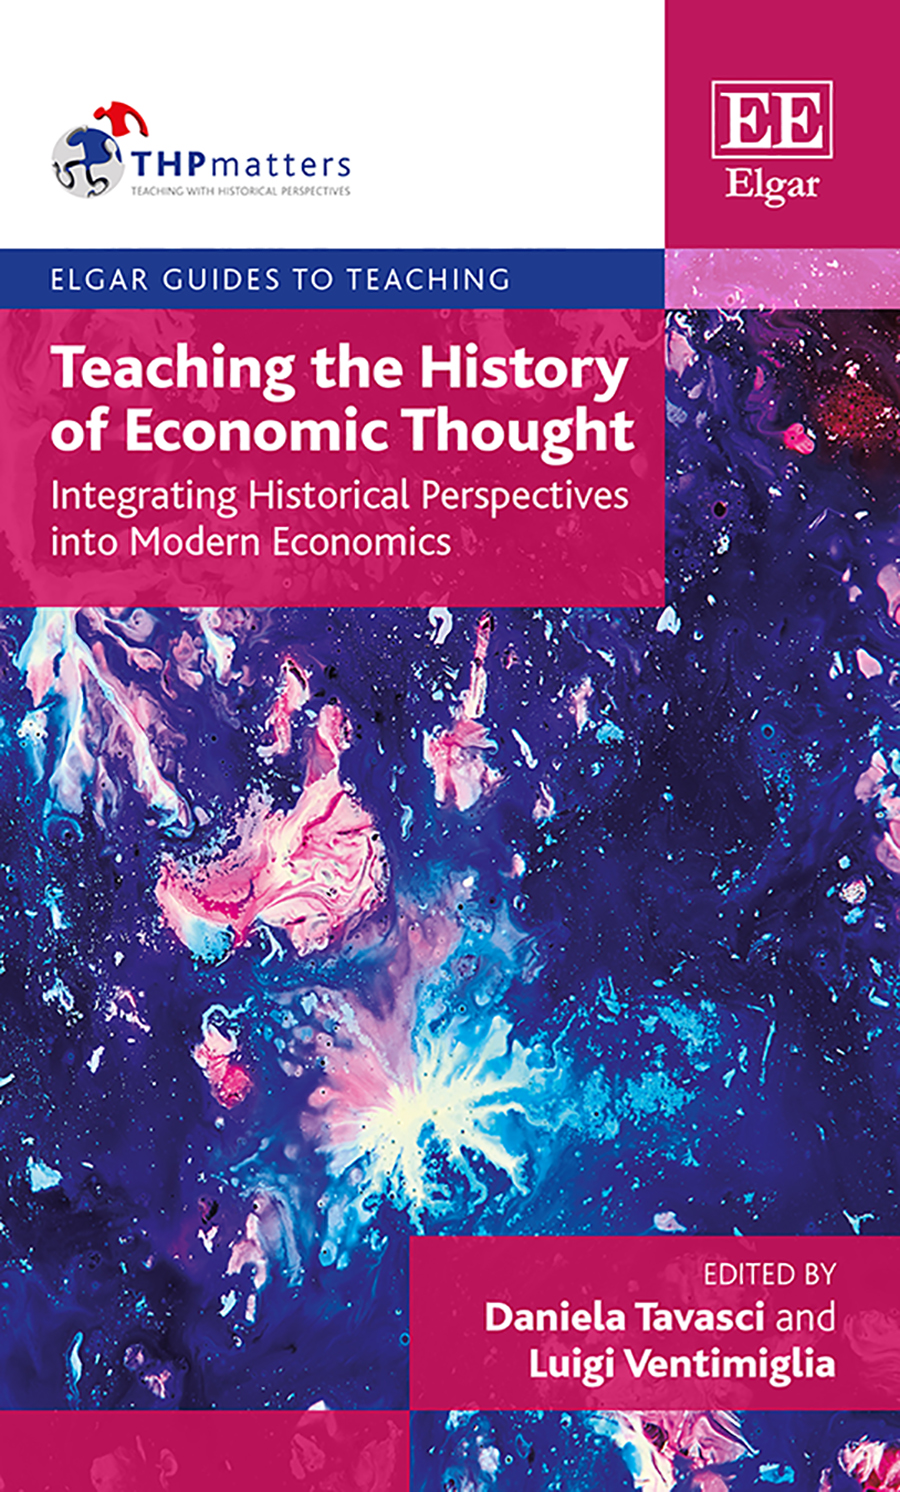 Download Ebook Teaching the History of Economic Thought by Daniela Tavasci Pdf